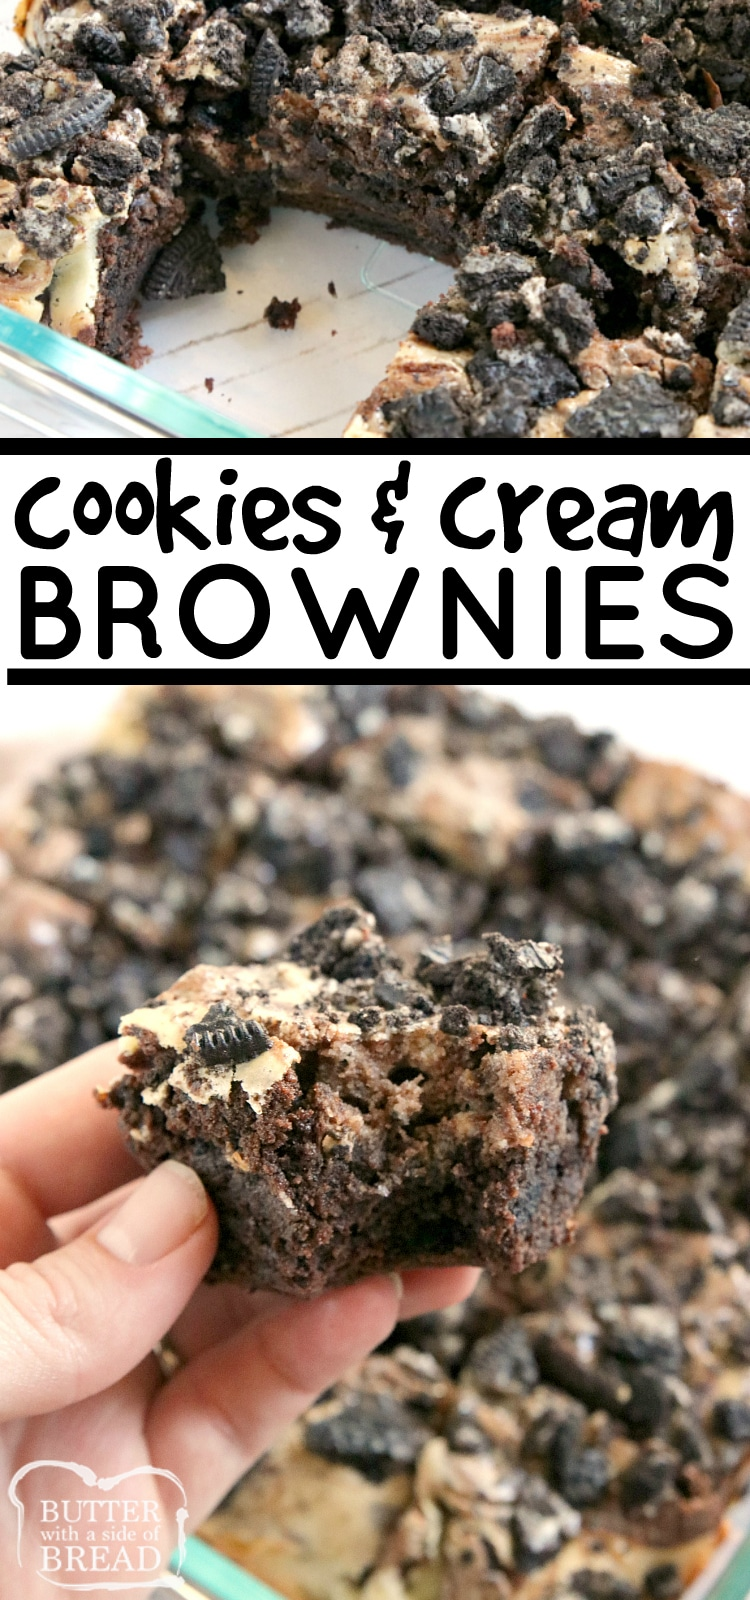 Cookies and Cream Brownies combine a rich, fudgy brownie recipe with a sweet cream cheese layer that is swirled on top! There are Oreo cookies in the brownies and also on top for more cookies and cream deliciousness!